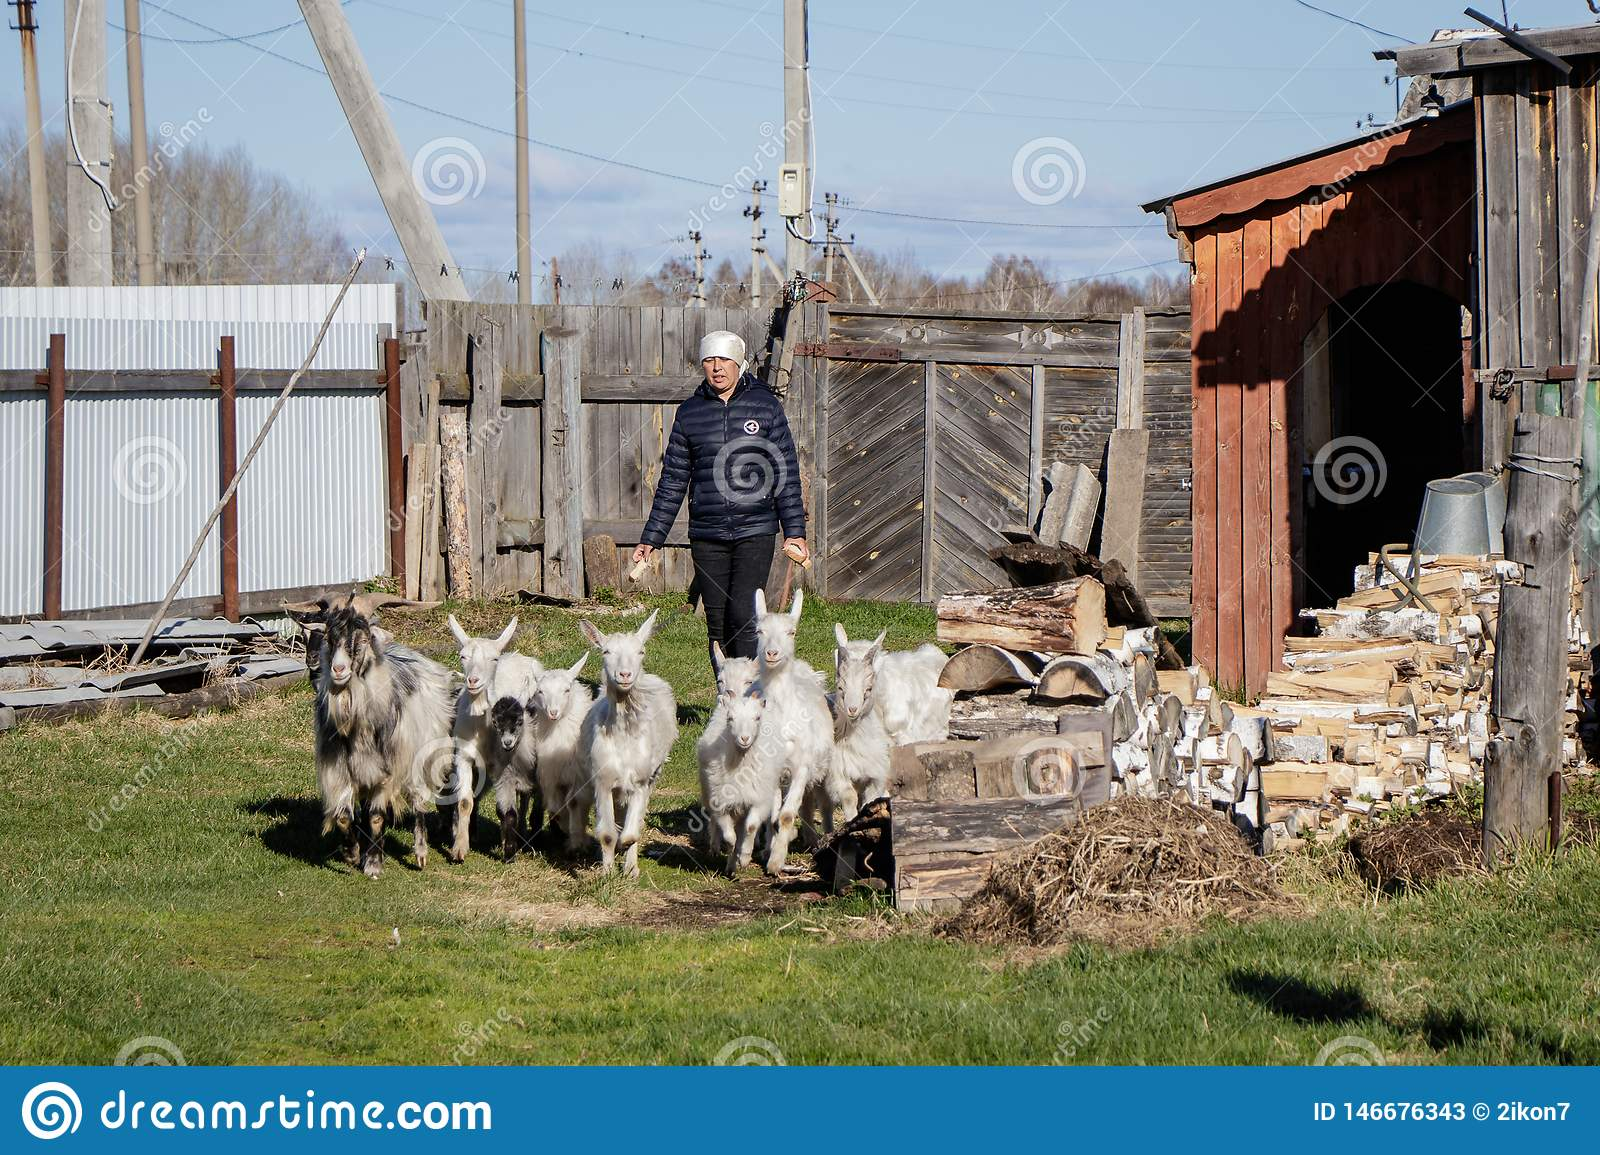 Aromashevsky Russia 24 May 2018: woman with goats on the farmstead